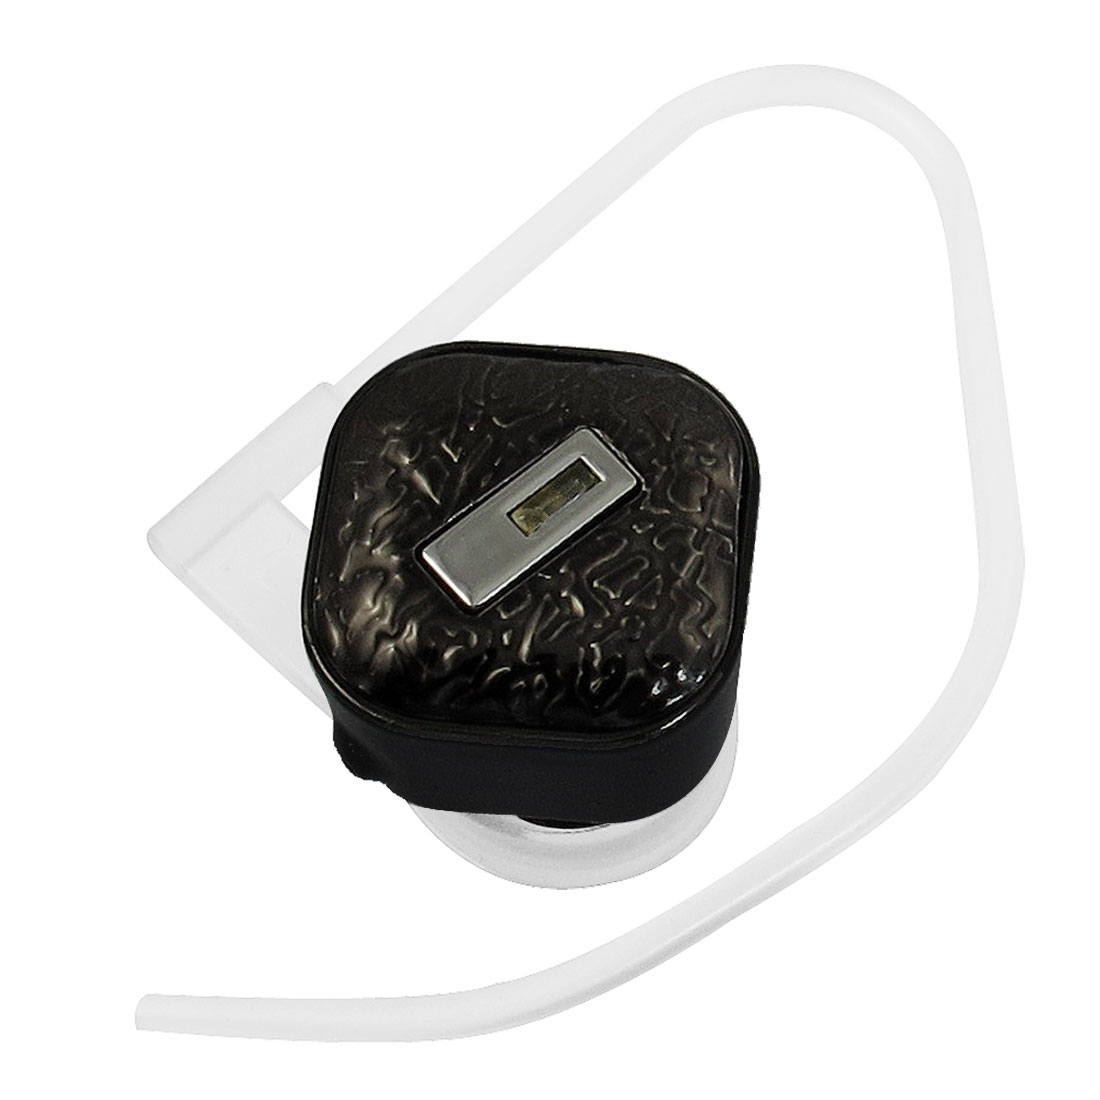 Universal Black Square Shaped Wireless bluetooth Earphone Headset